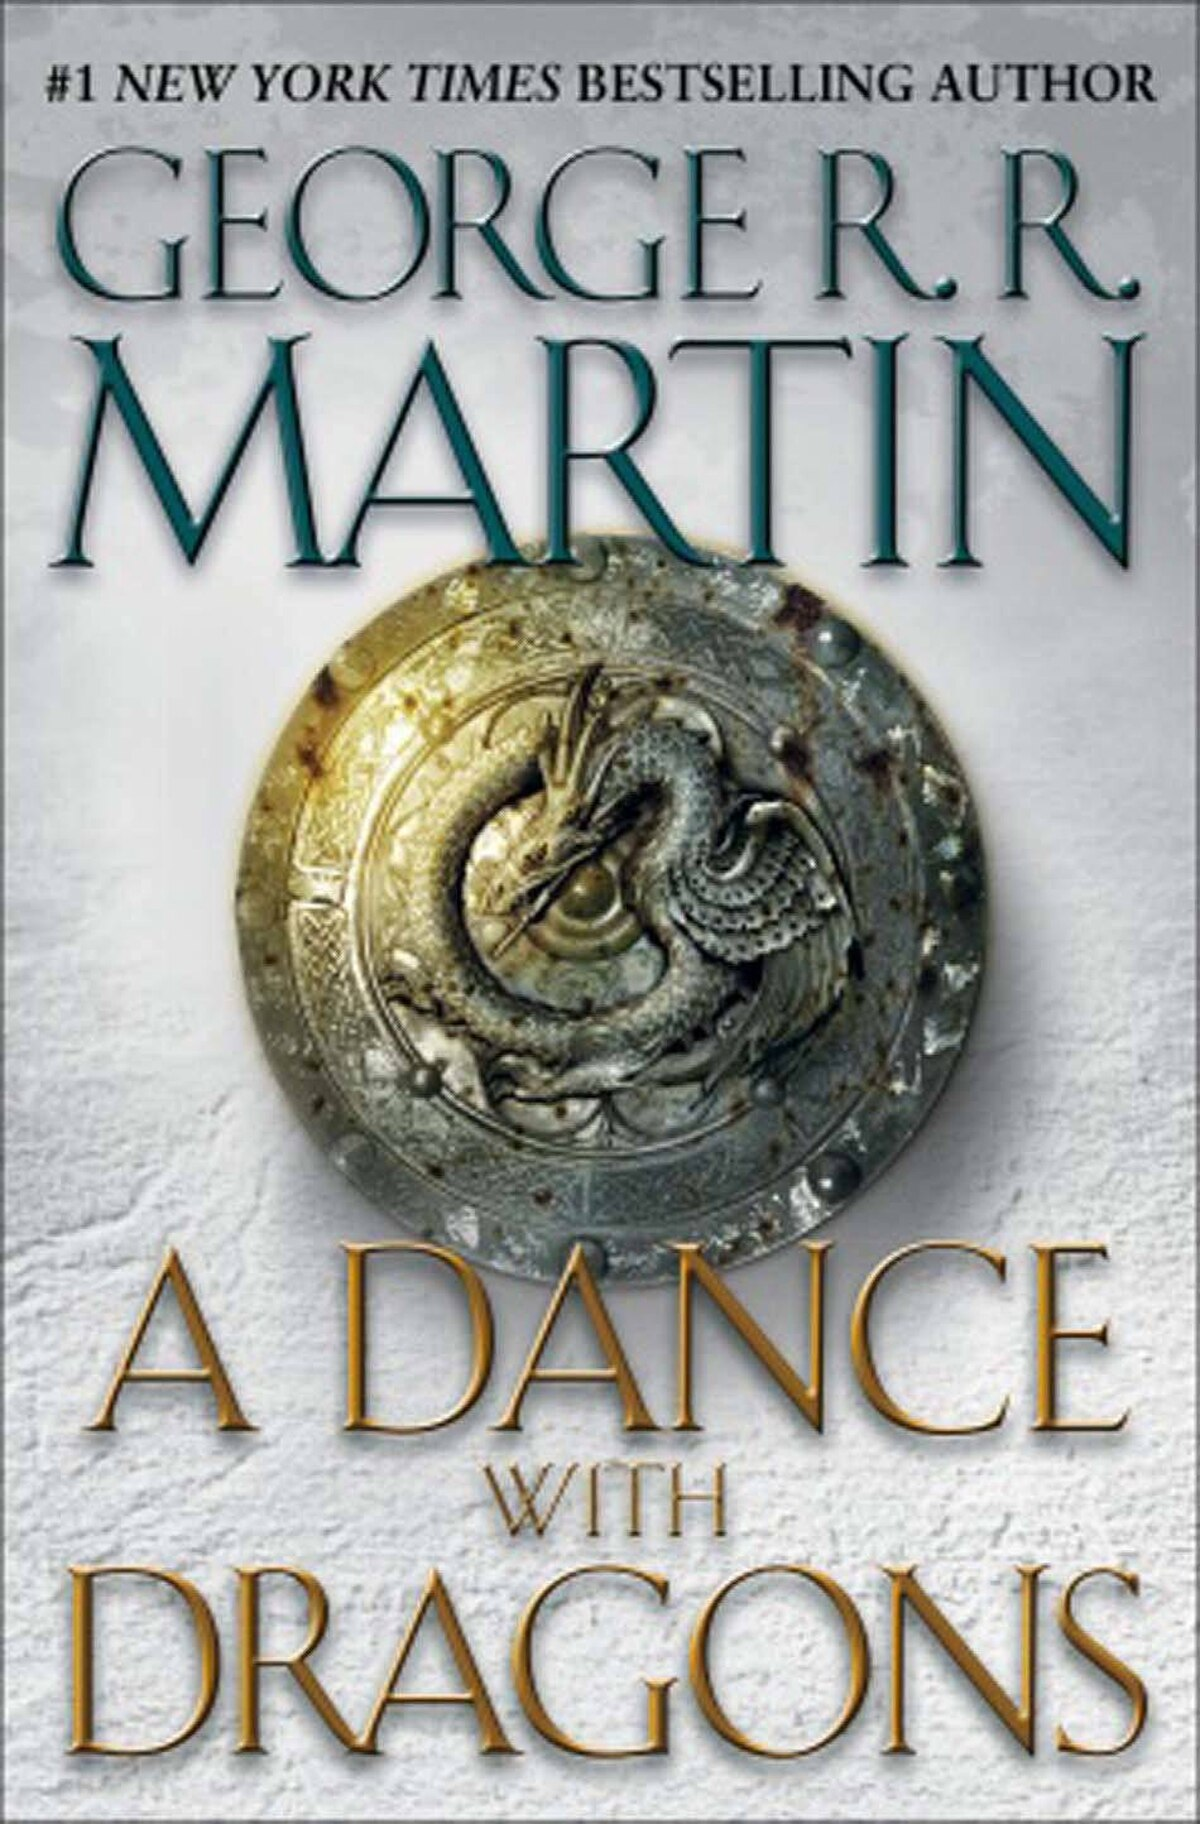 A DANCE WITH DRAGONS By George R.R. Martin (Bantam) The long-awaited fifth volume in the mammoth Song of Ice and Fire fantasy series centres on the power struggles of the Houses of Stark and Lannister. The story has expanded far beyond the original characters to become a labyrinthine edifice, encompassing myriad characters, cultures, intrigues and mysteries. But by the end, breakneck ferocity has returned. – Ilana Teitelbaum